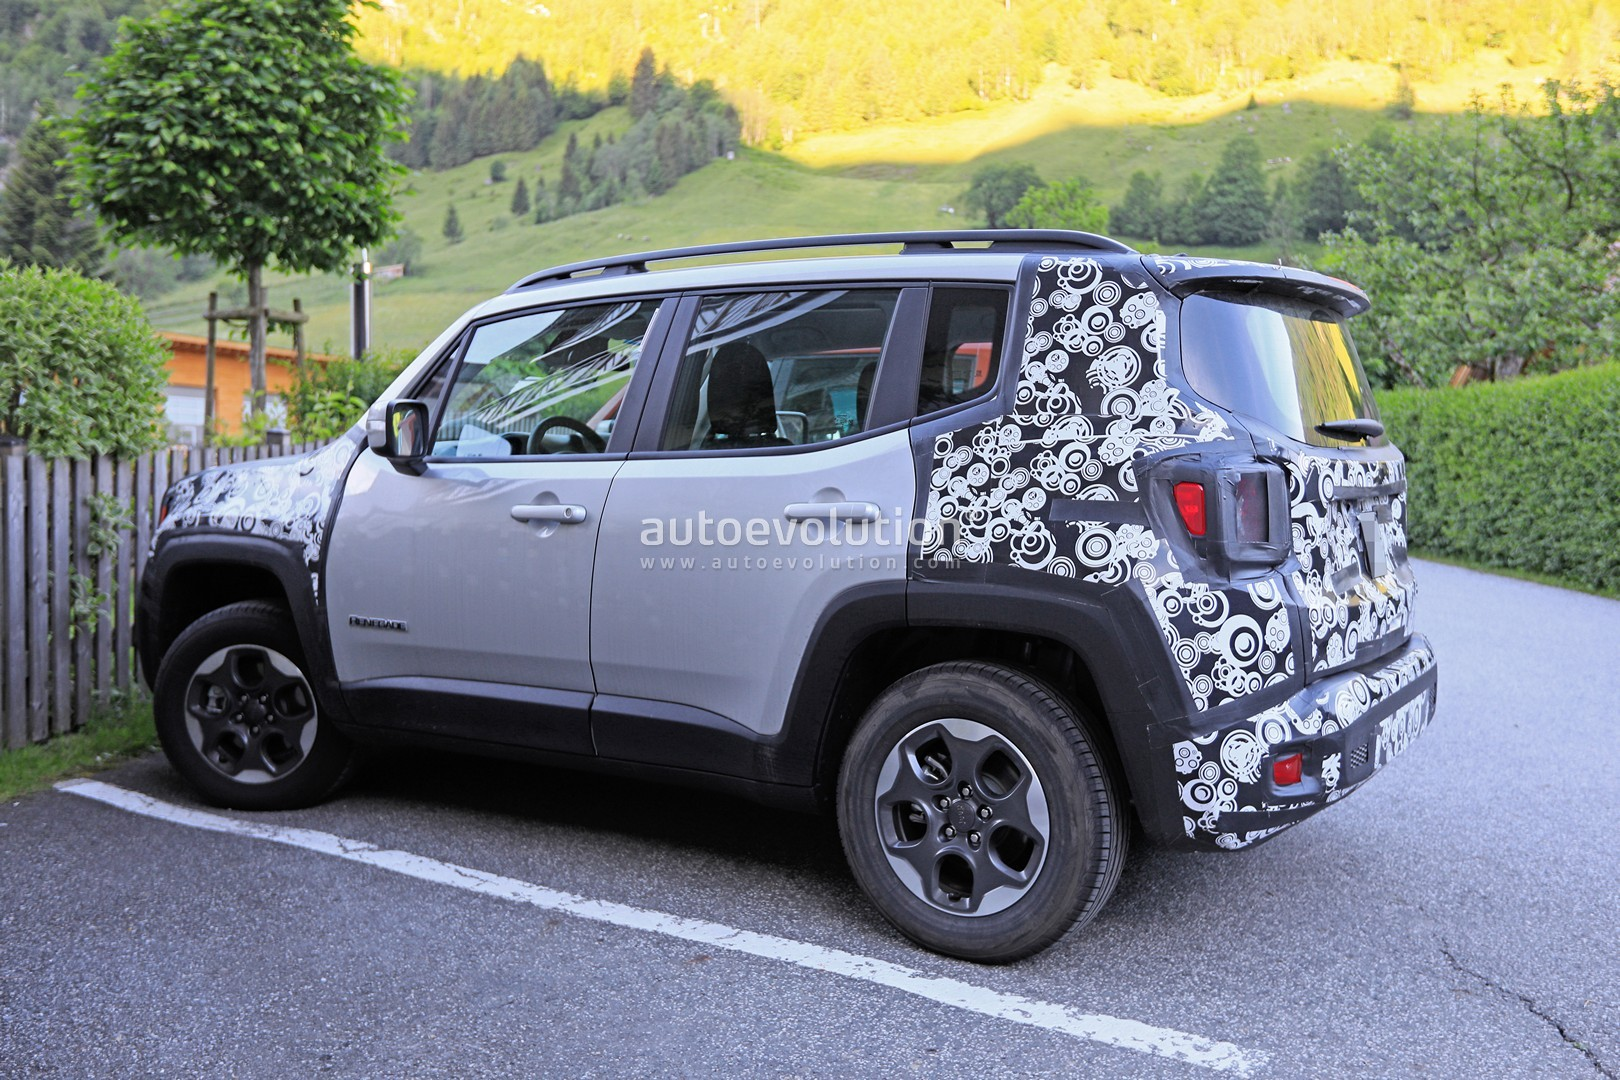 Jeep Renegade PHEV Coming In 2020 - autoevolution